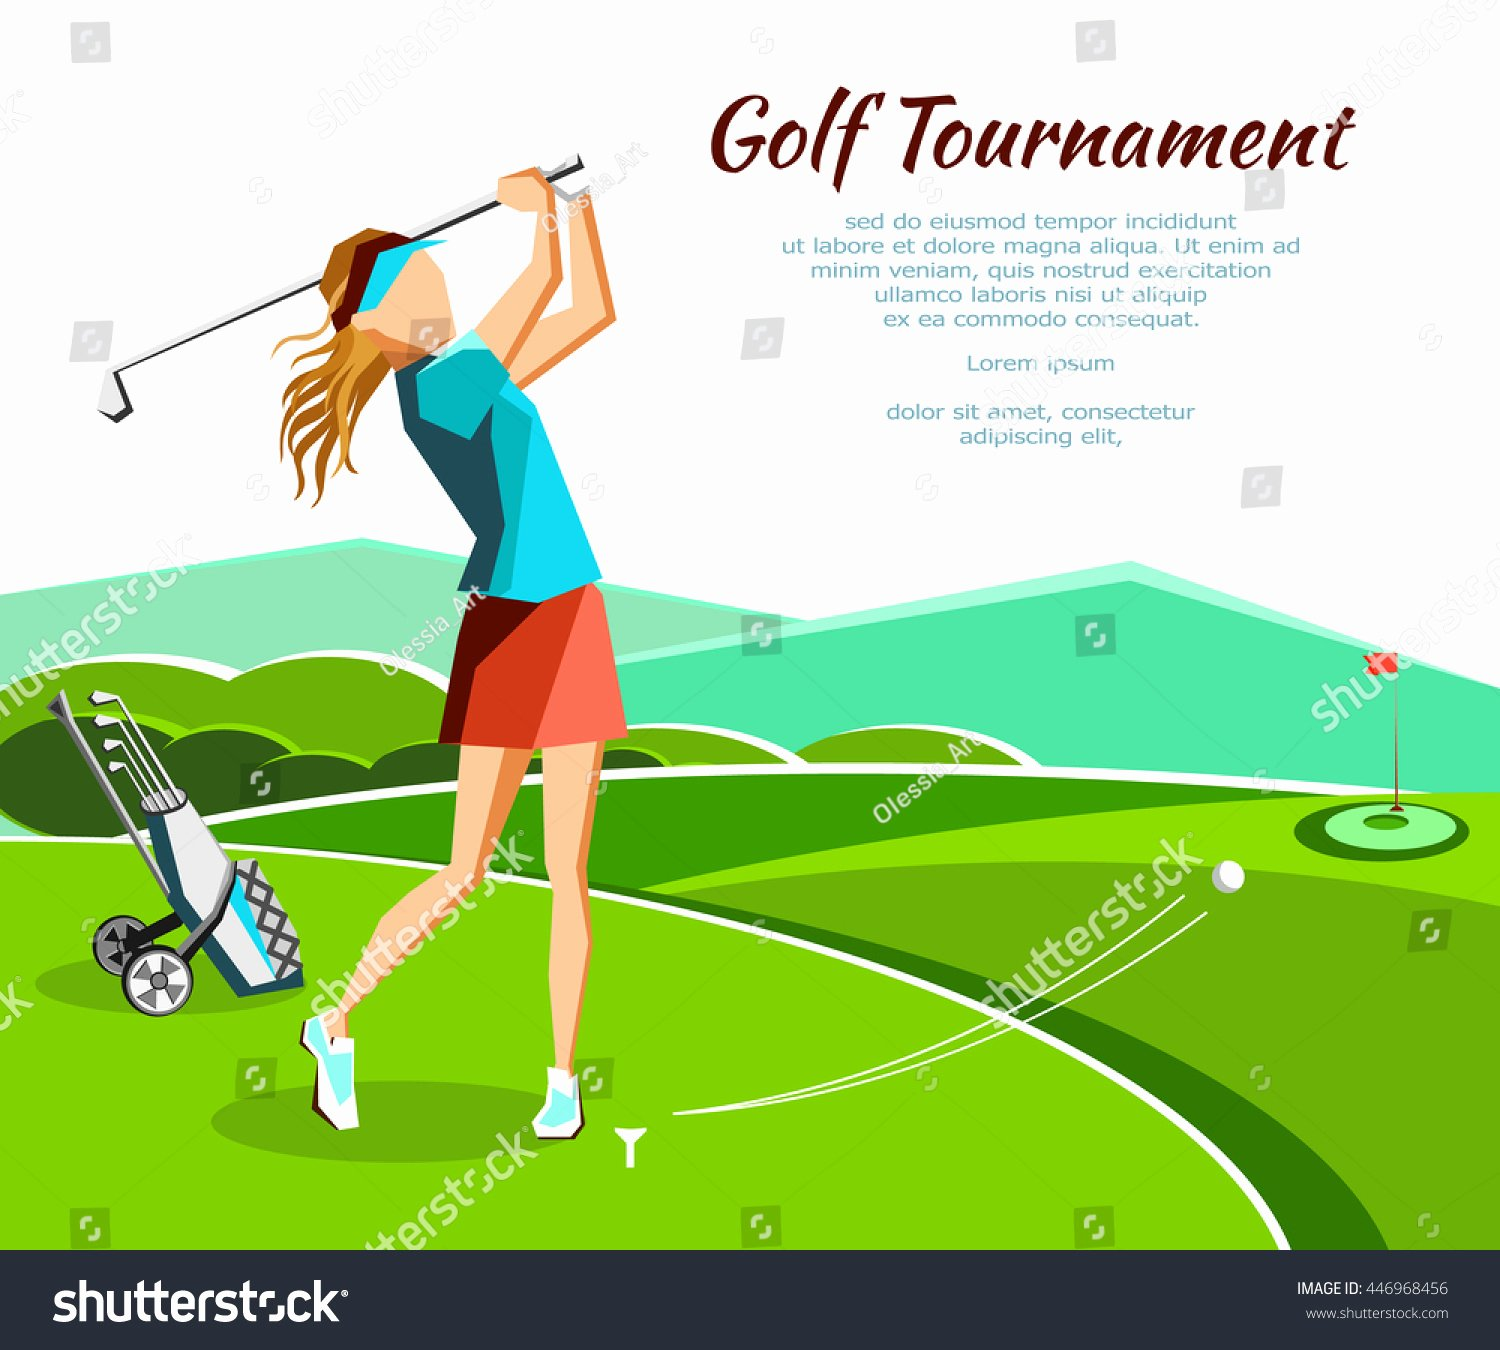 Golf Club Petition tournament Banner Poster Stock